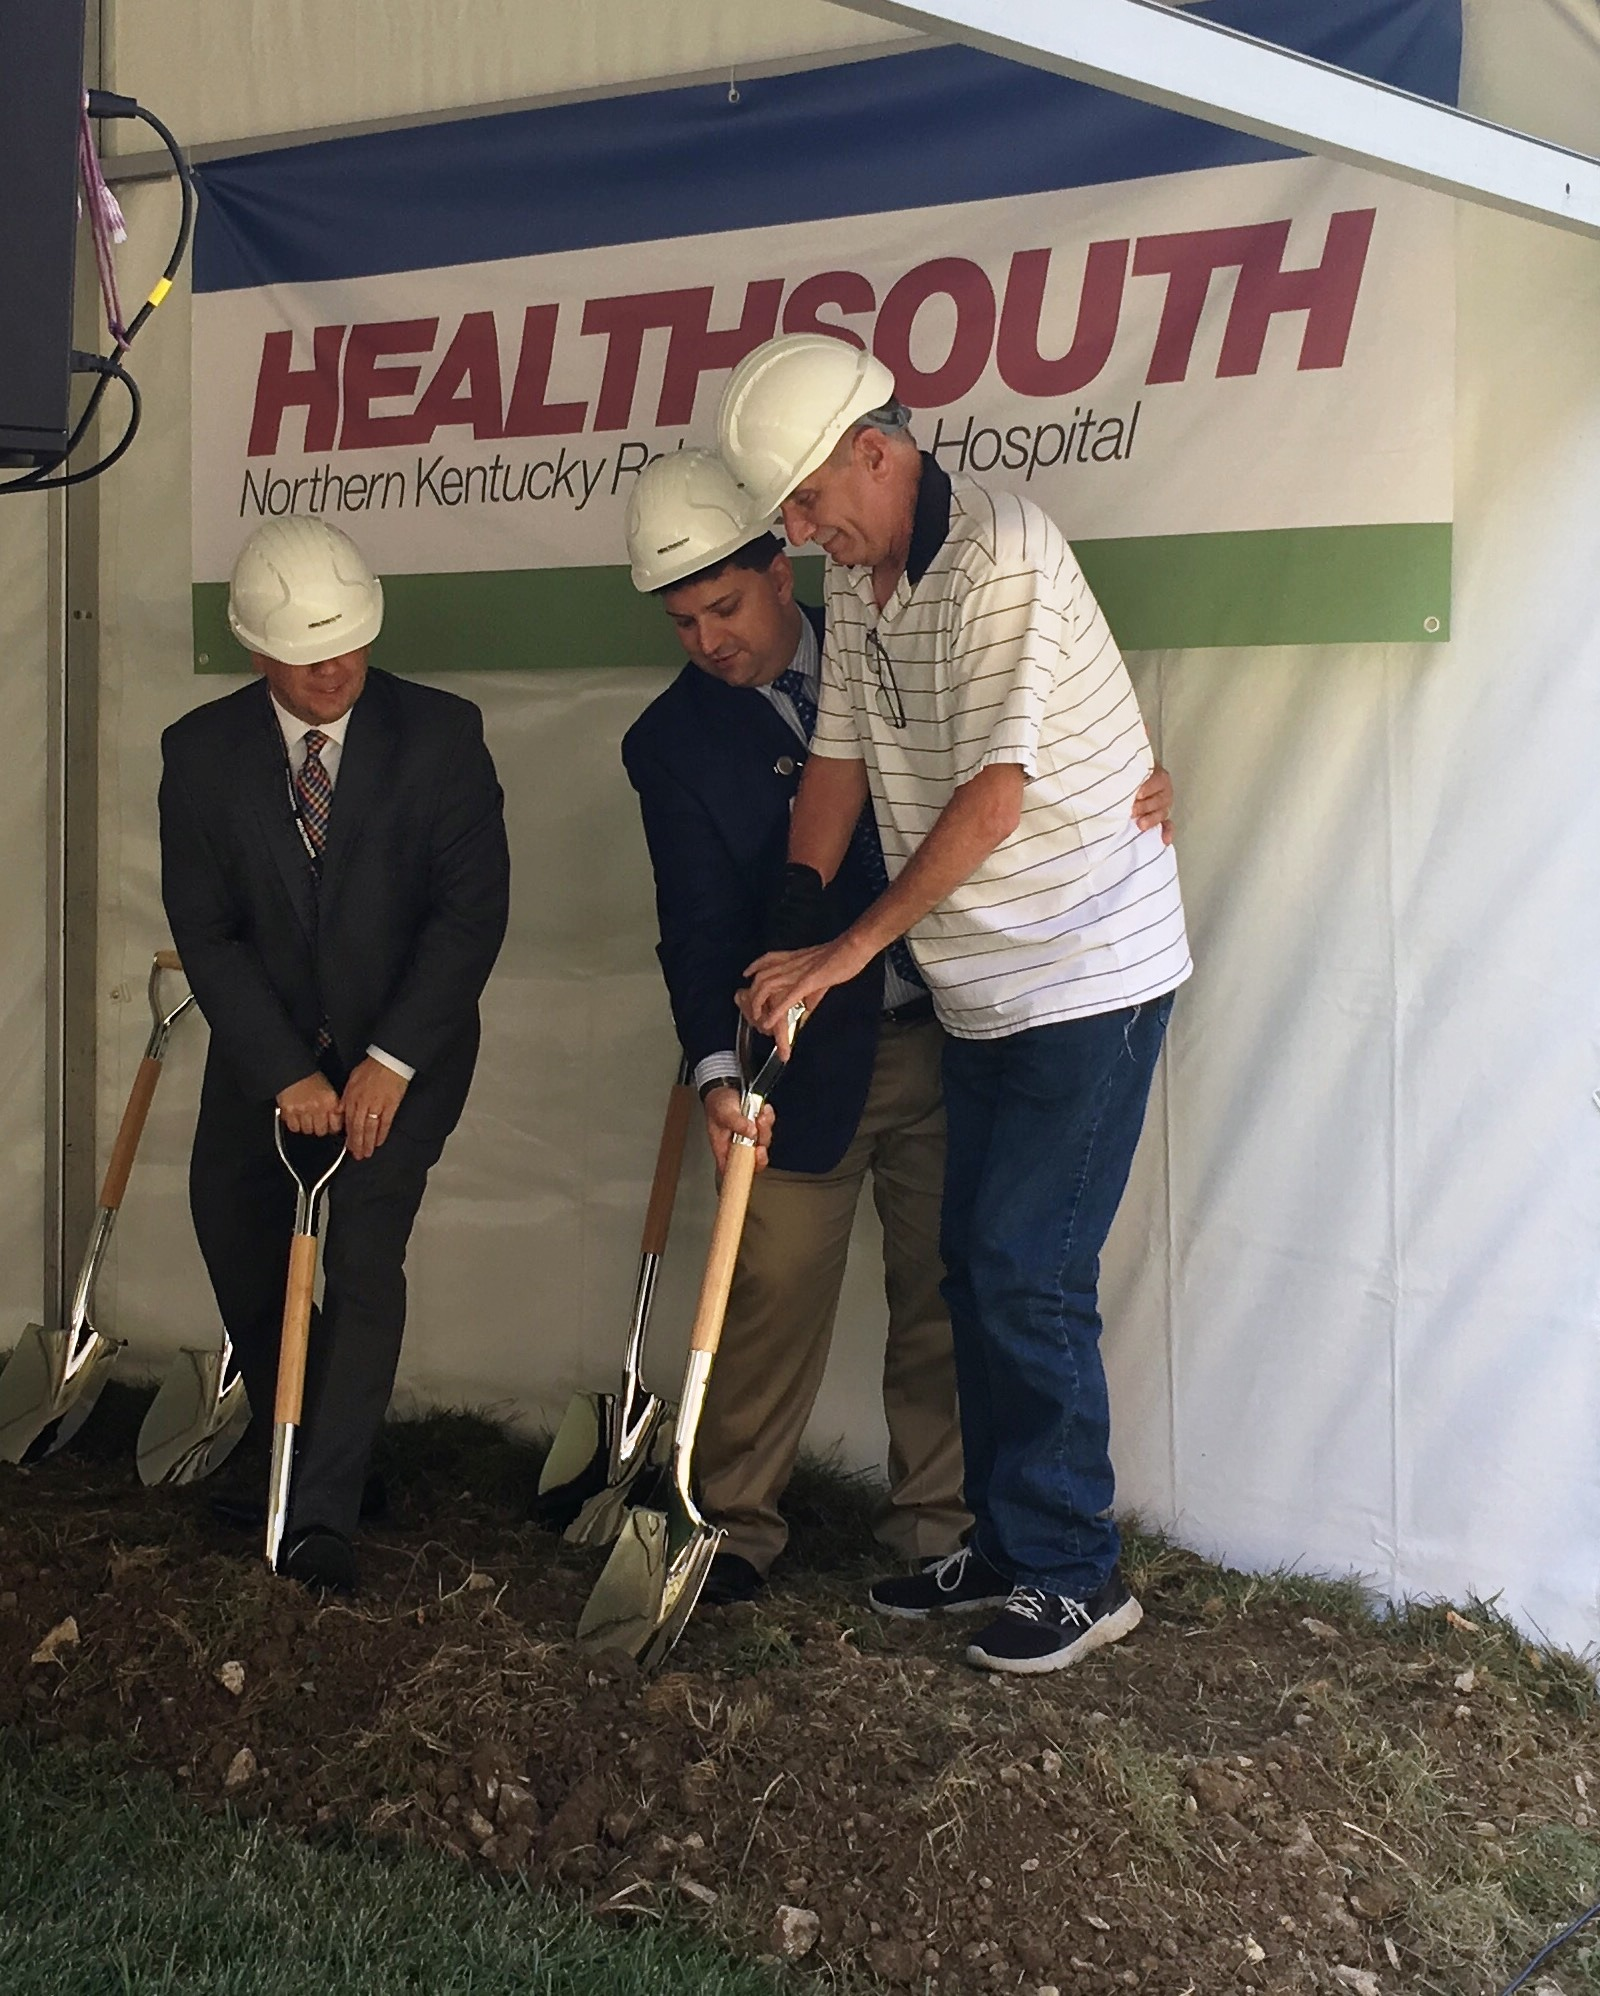 Healthsouth physical therapy - Left To Right Jeremy Yates Ceo Healthsouth Northern Kentucky Troy Dedecker Regional President And Bill Kappesser A Former Patient From Healthsouth